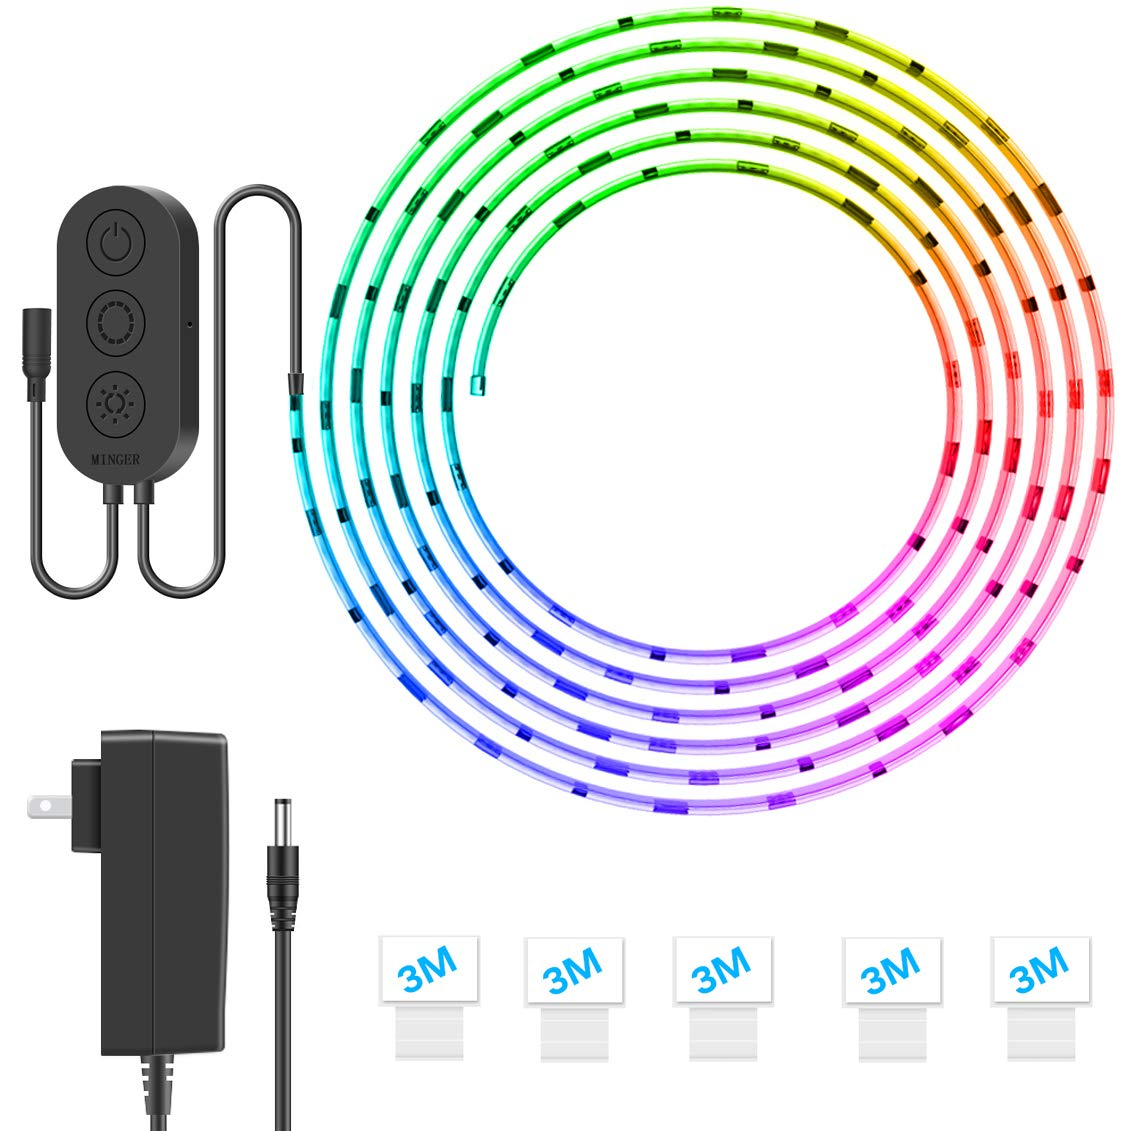 MINGER DreamColor LED Strip Lights, Smart Music Sync Light Strip Phone App Controlled Waterproof for